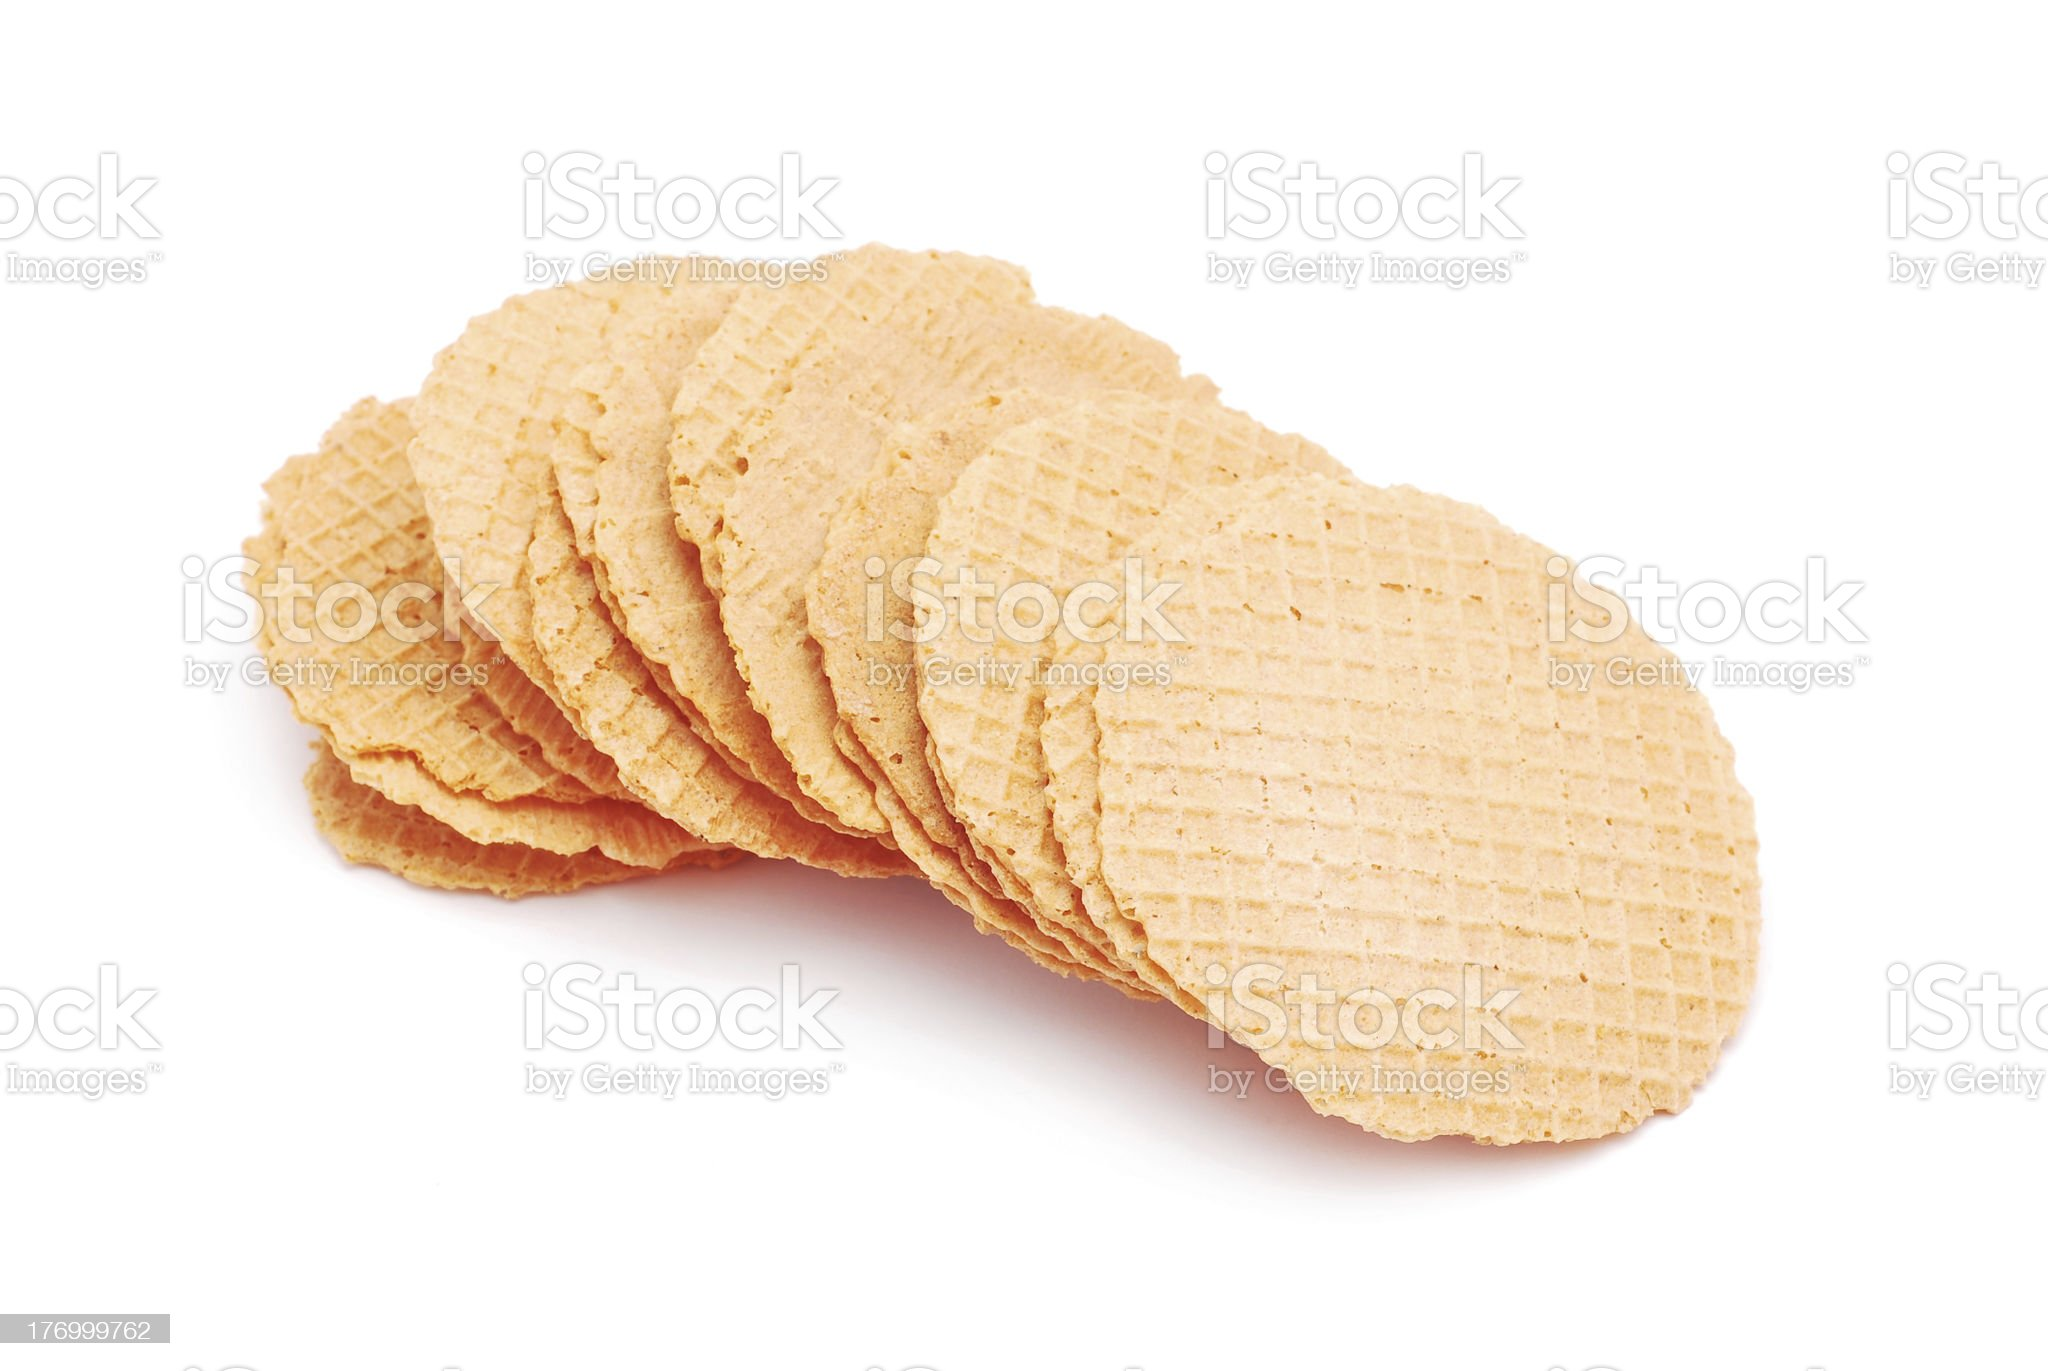 wafers royalty-free stock photo